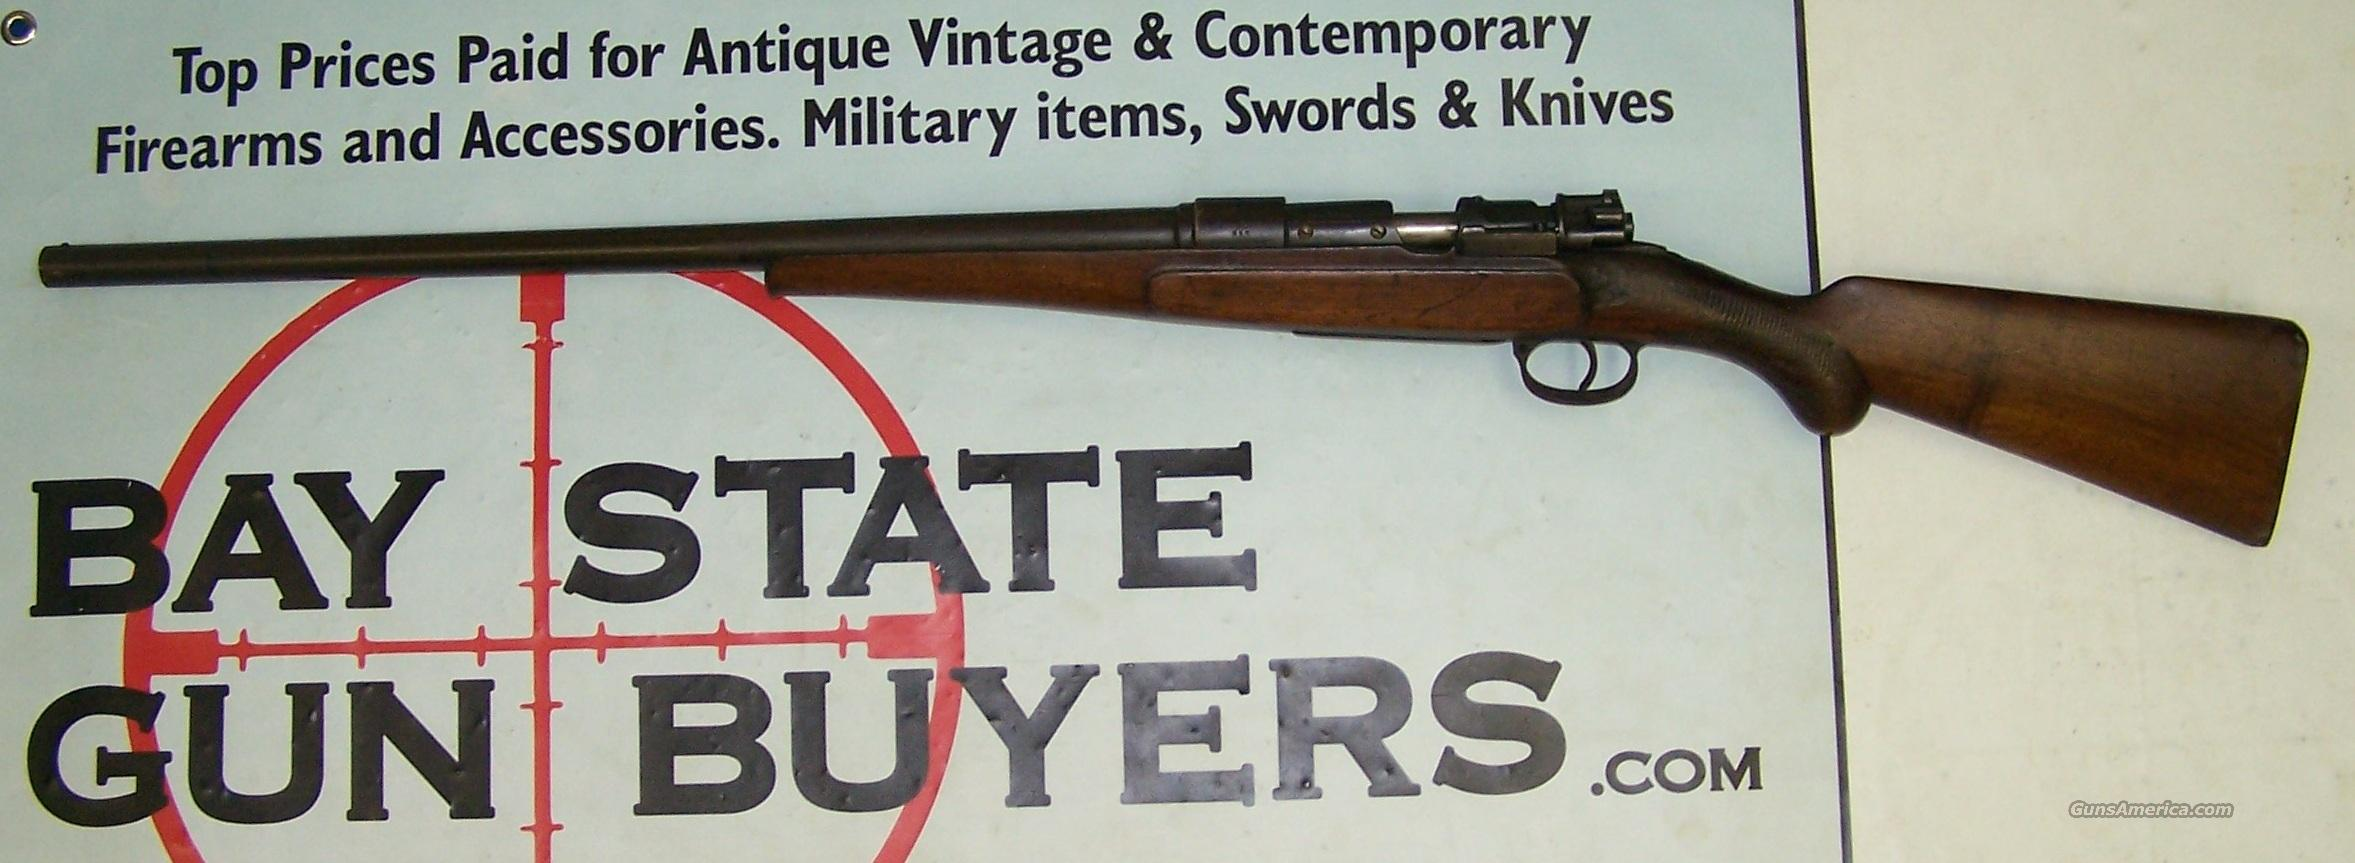 German Made REMO Bolt Action Shotgun 12 ga. MAUSER ACTION  Guns > Shotguns > R Misc Shotguns